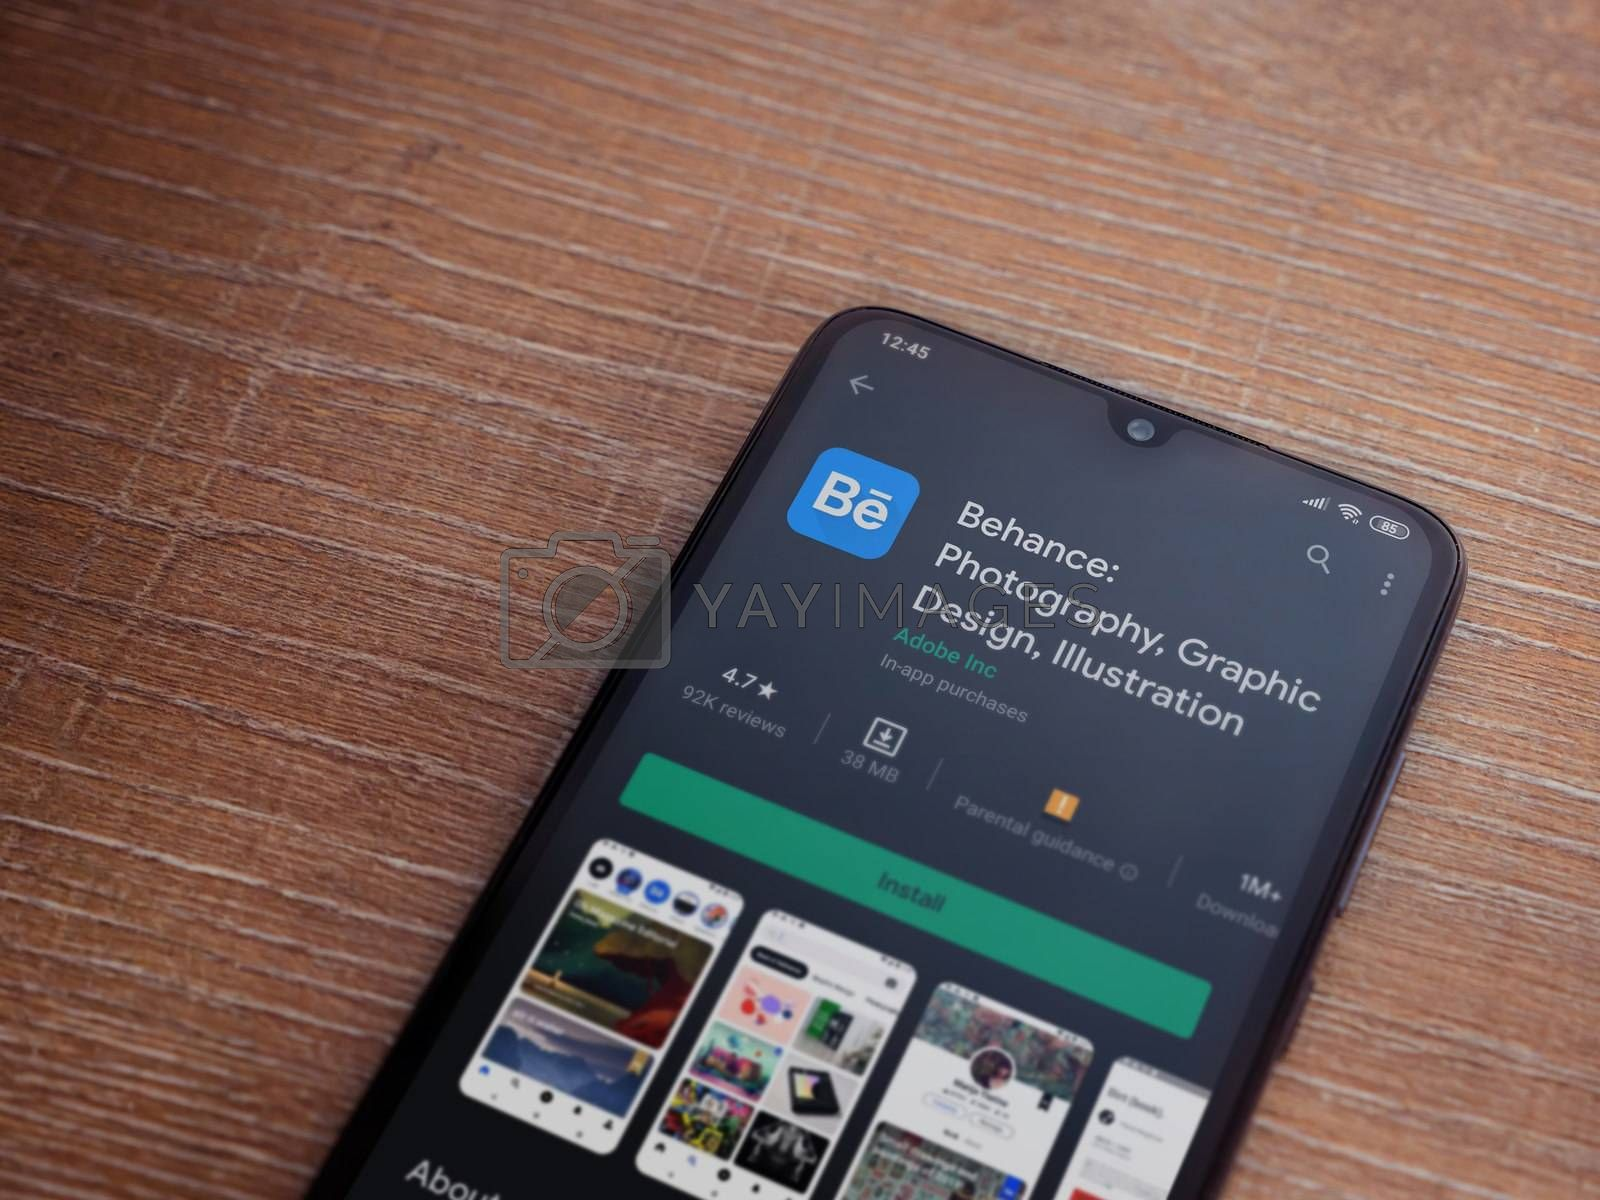 Lod, Israel - July 8, 2020: Adobe Behance app play store page on the display of a black mobile smartphone on wooden background. Top view flat lay with copy space.